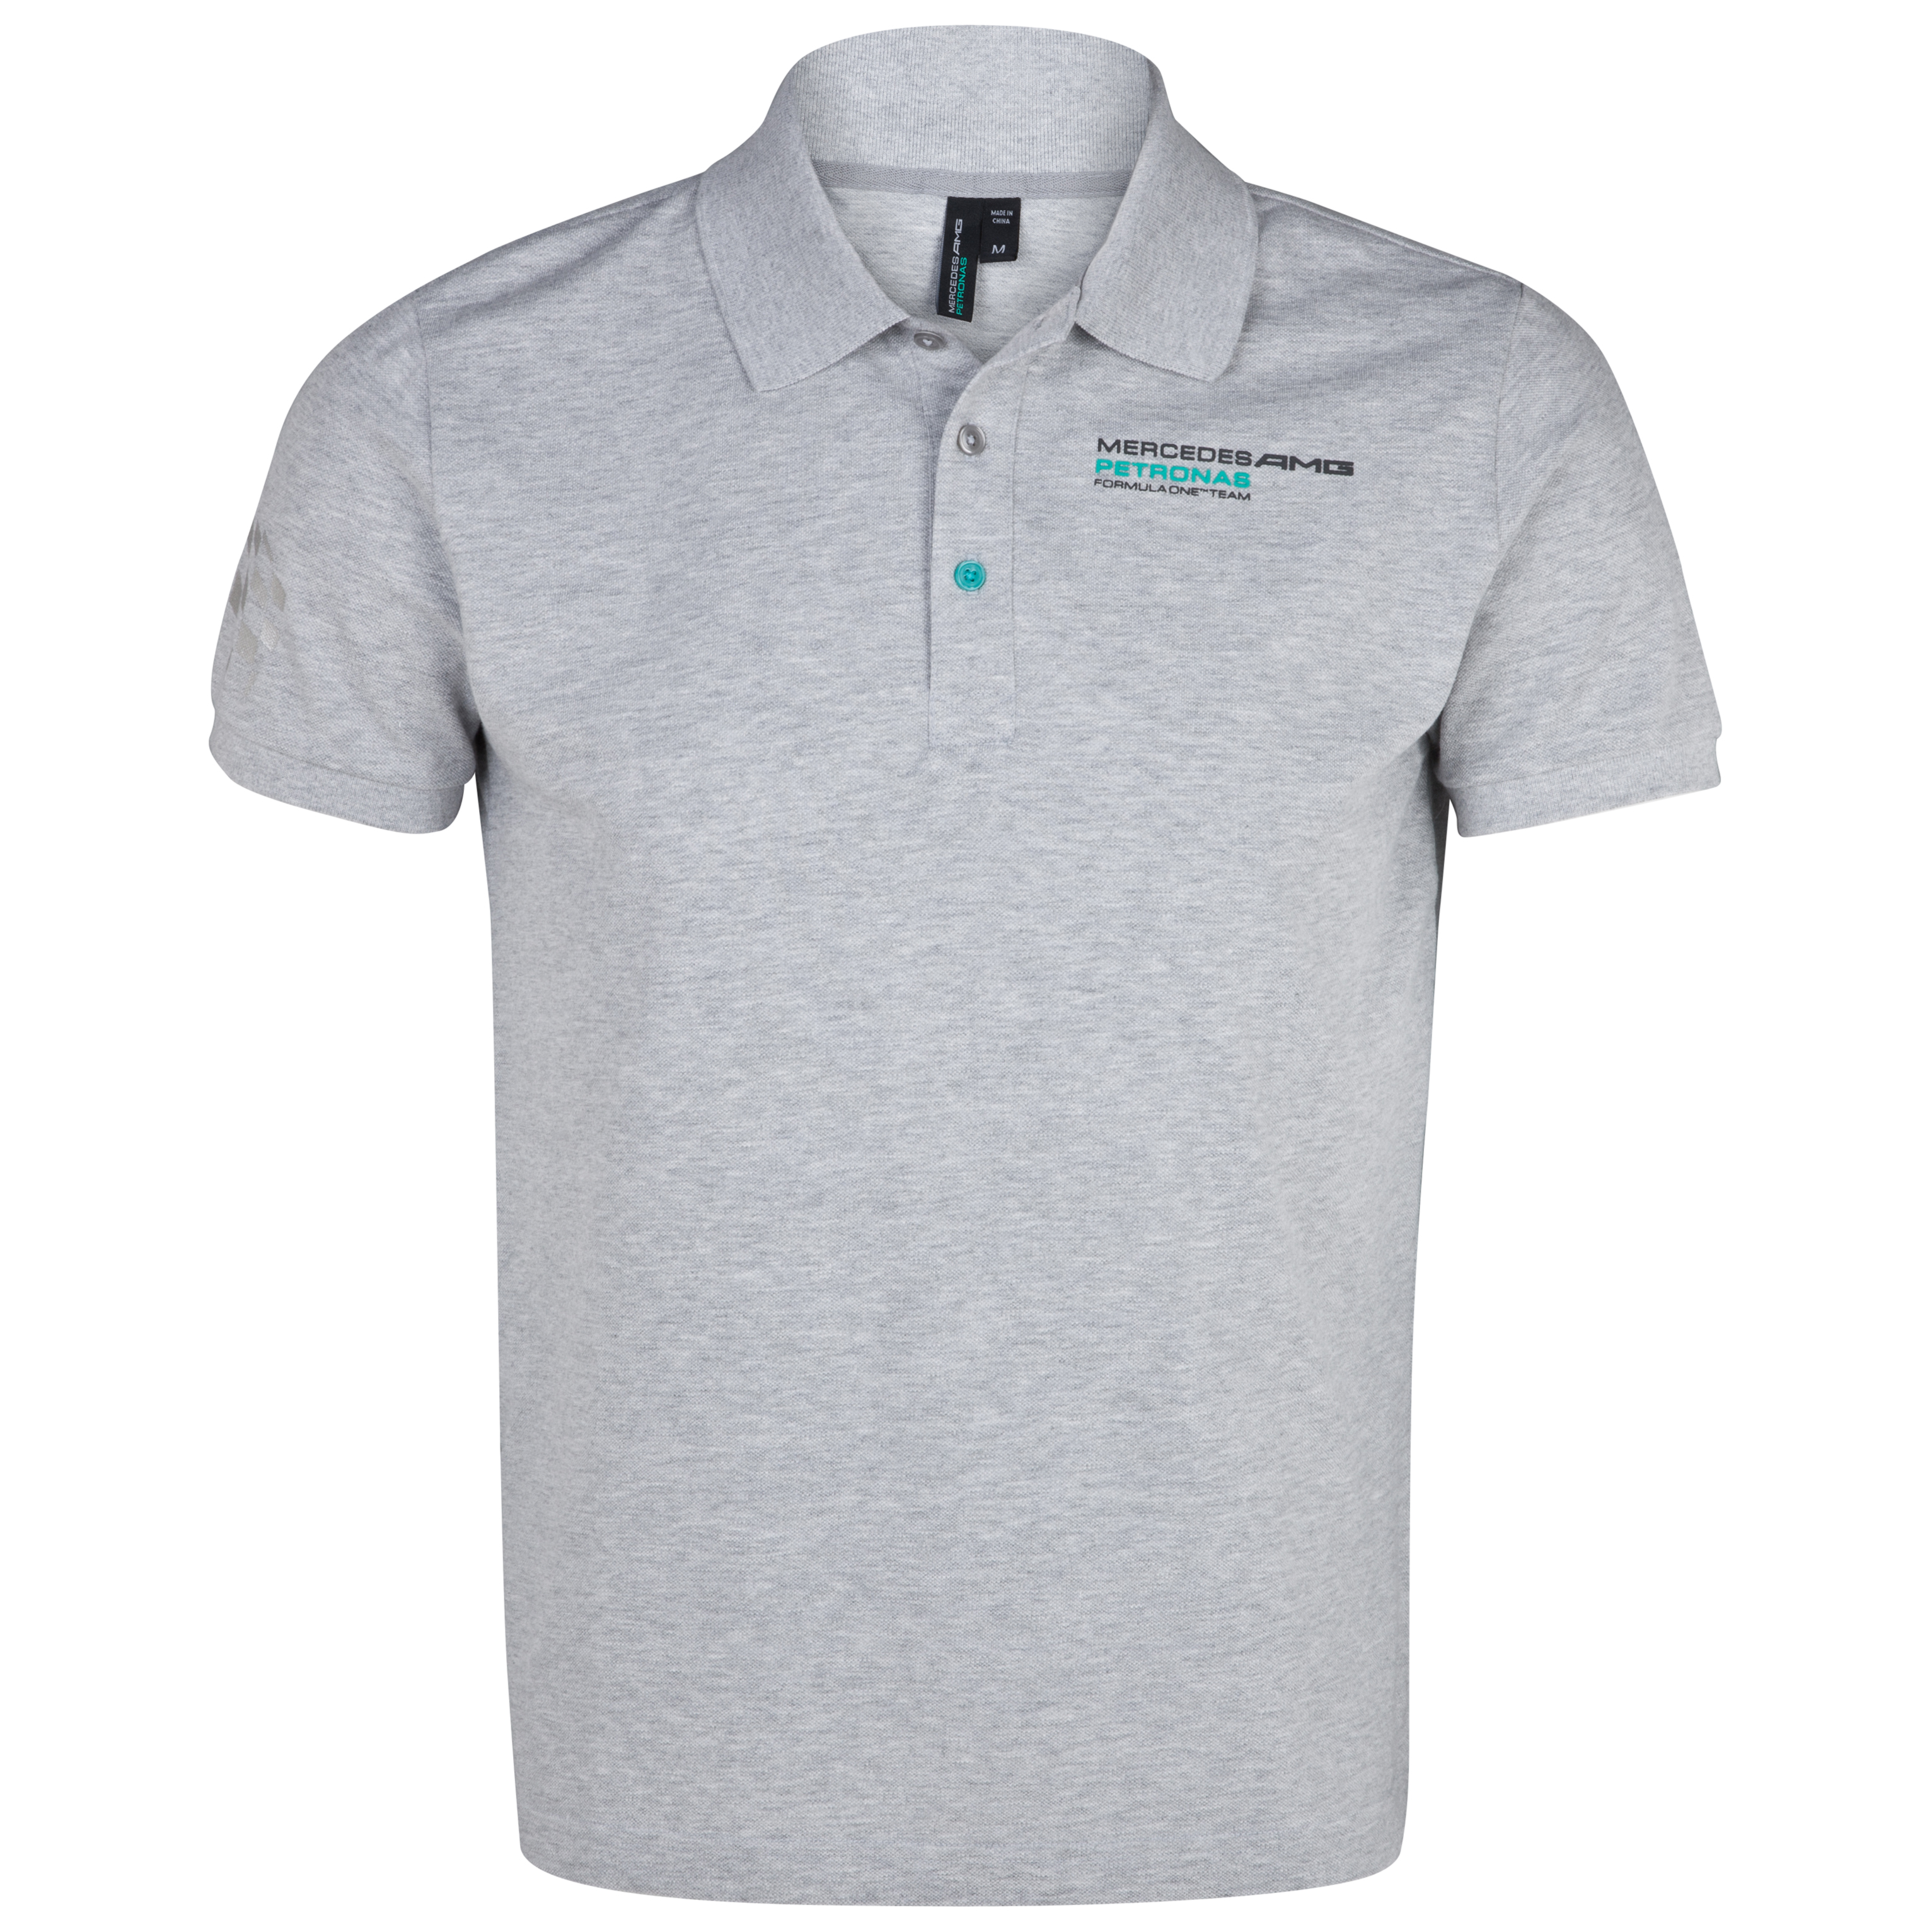 Mercedes AMG Petronas Polo Shirt - Gray Heather